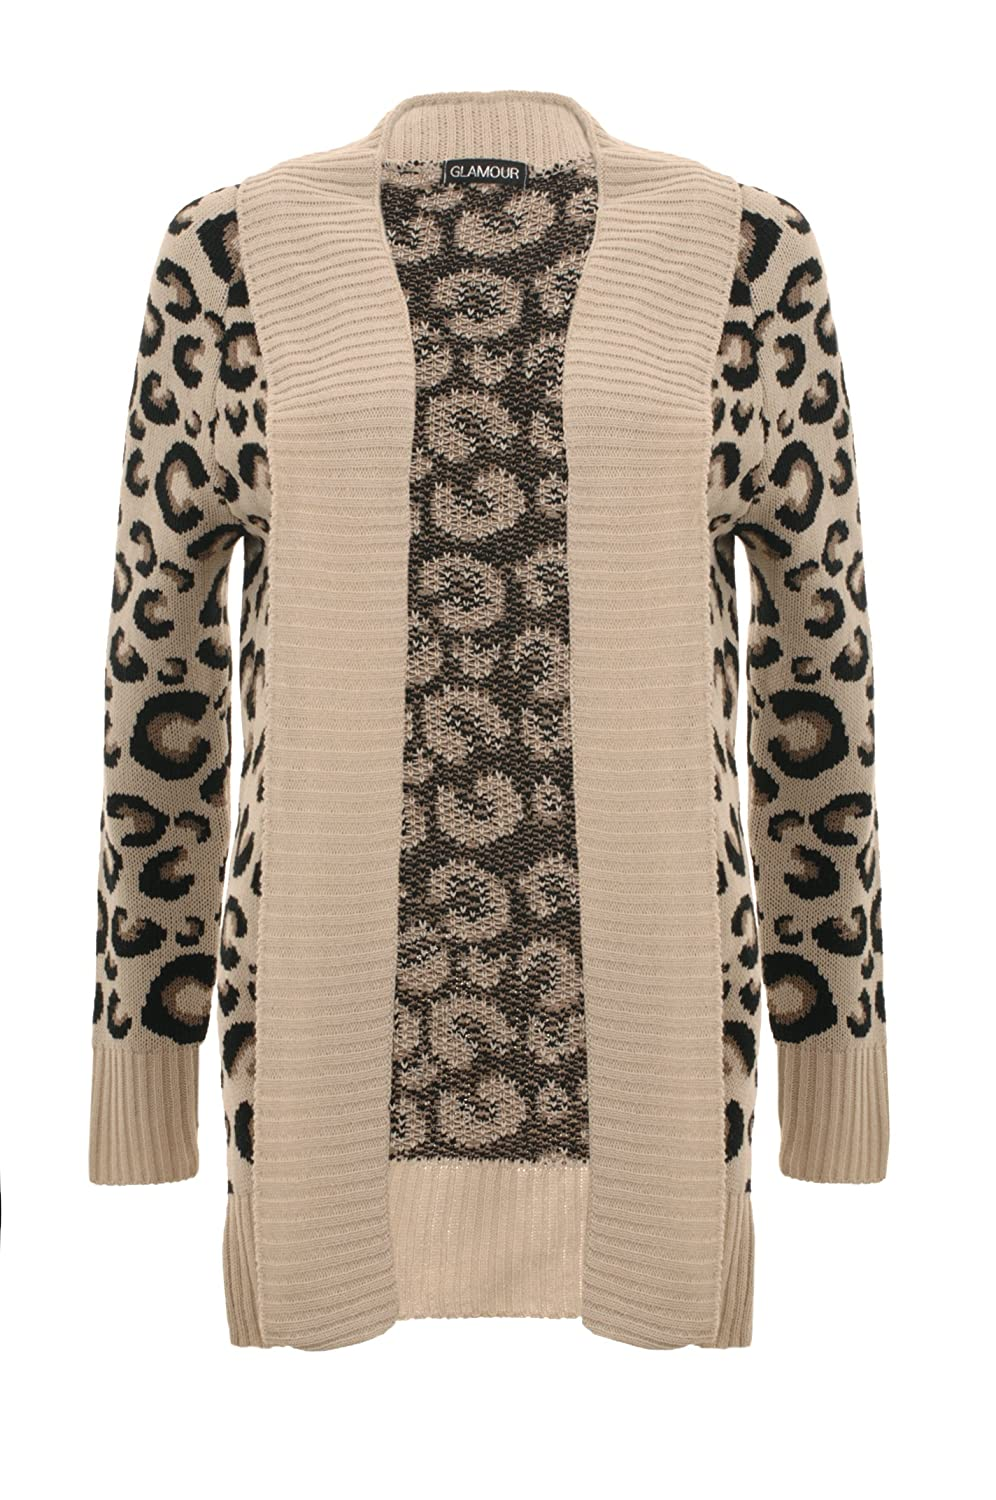 Girltalkfashions Leopard Print Cardigan Animal Print Over Sized ...